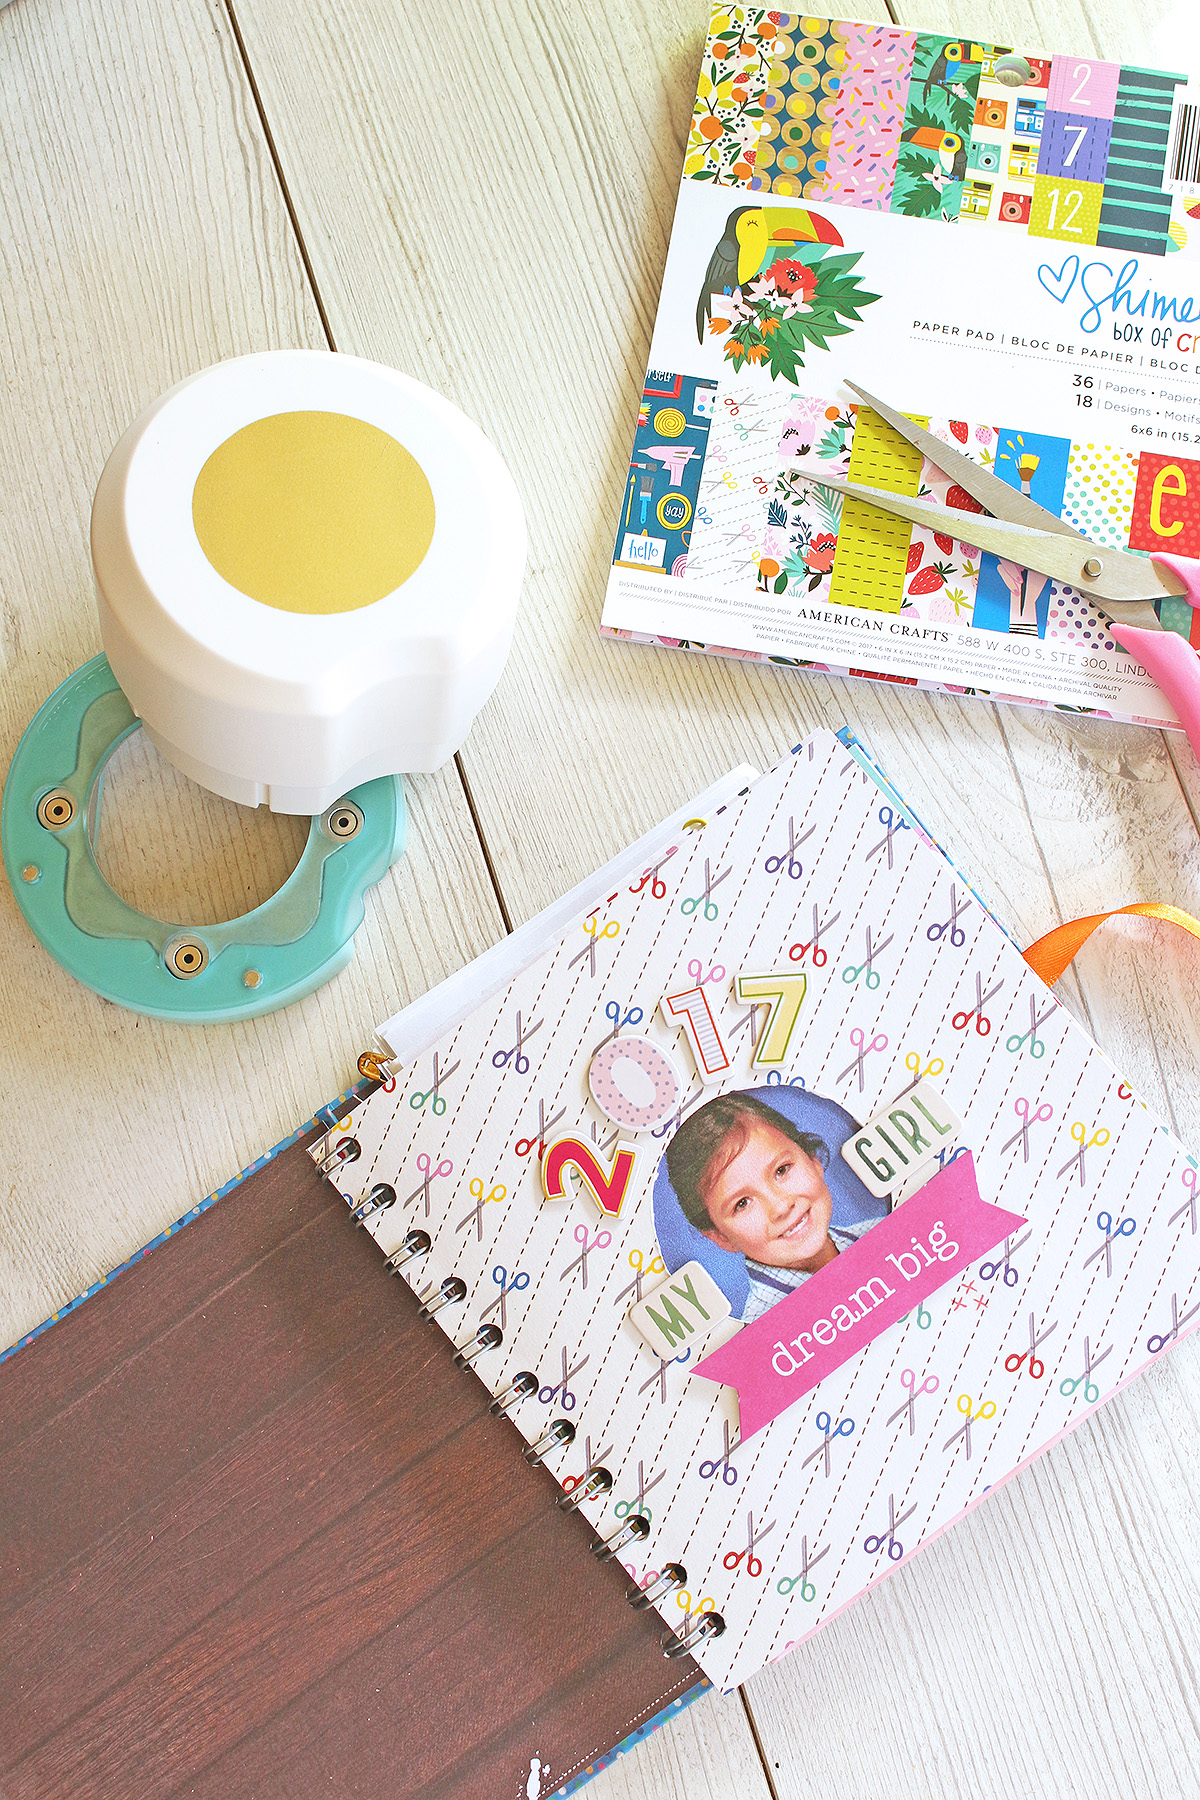 Mini Album by Chantalle McDaniel featuring the We R Memory Keepers Clear Cut Circle Punch